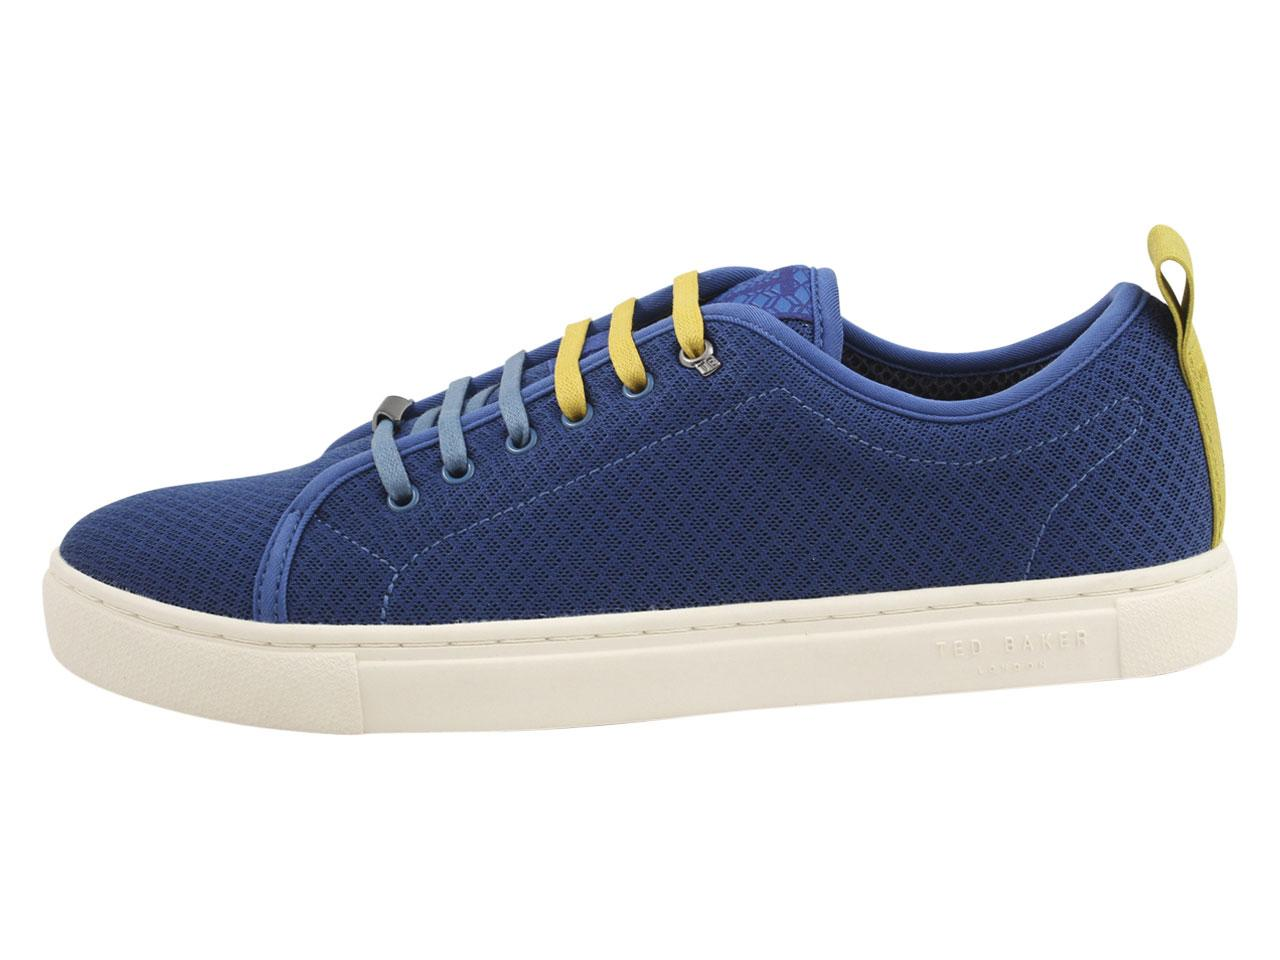 2092c28dcebe Ted Baker Men s Lannse Fashion Sneakers Shoes by Ted Baker. 1234567